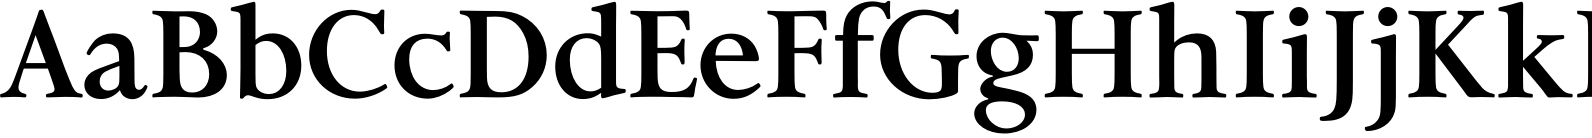 Aries Ranging Figs Bold Font